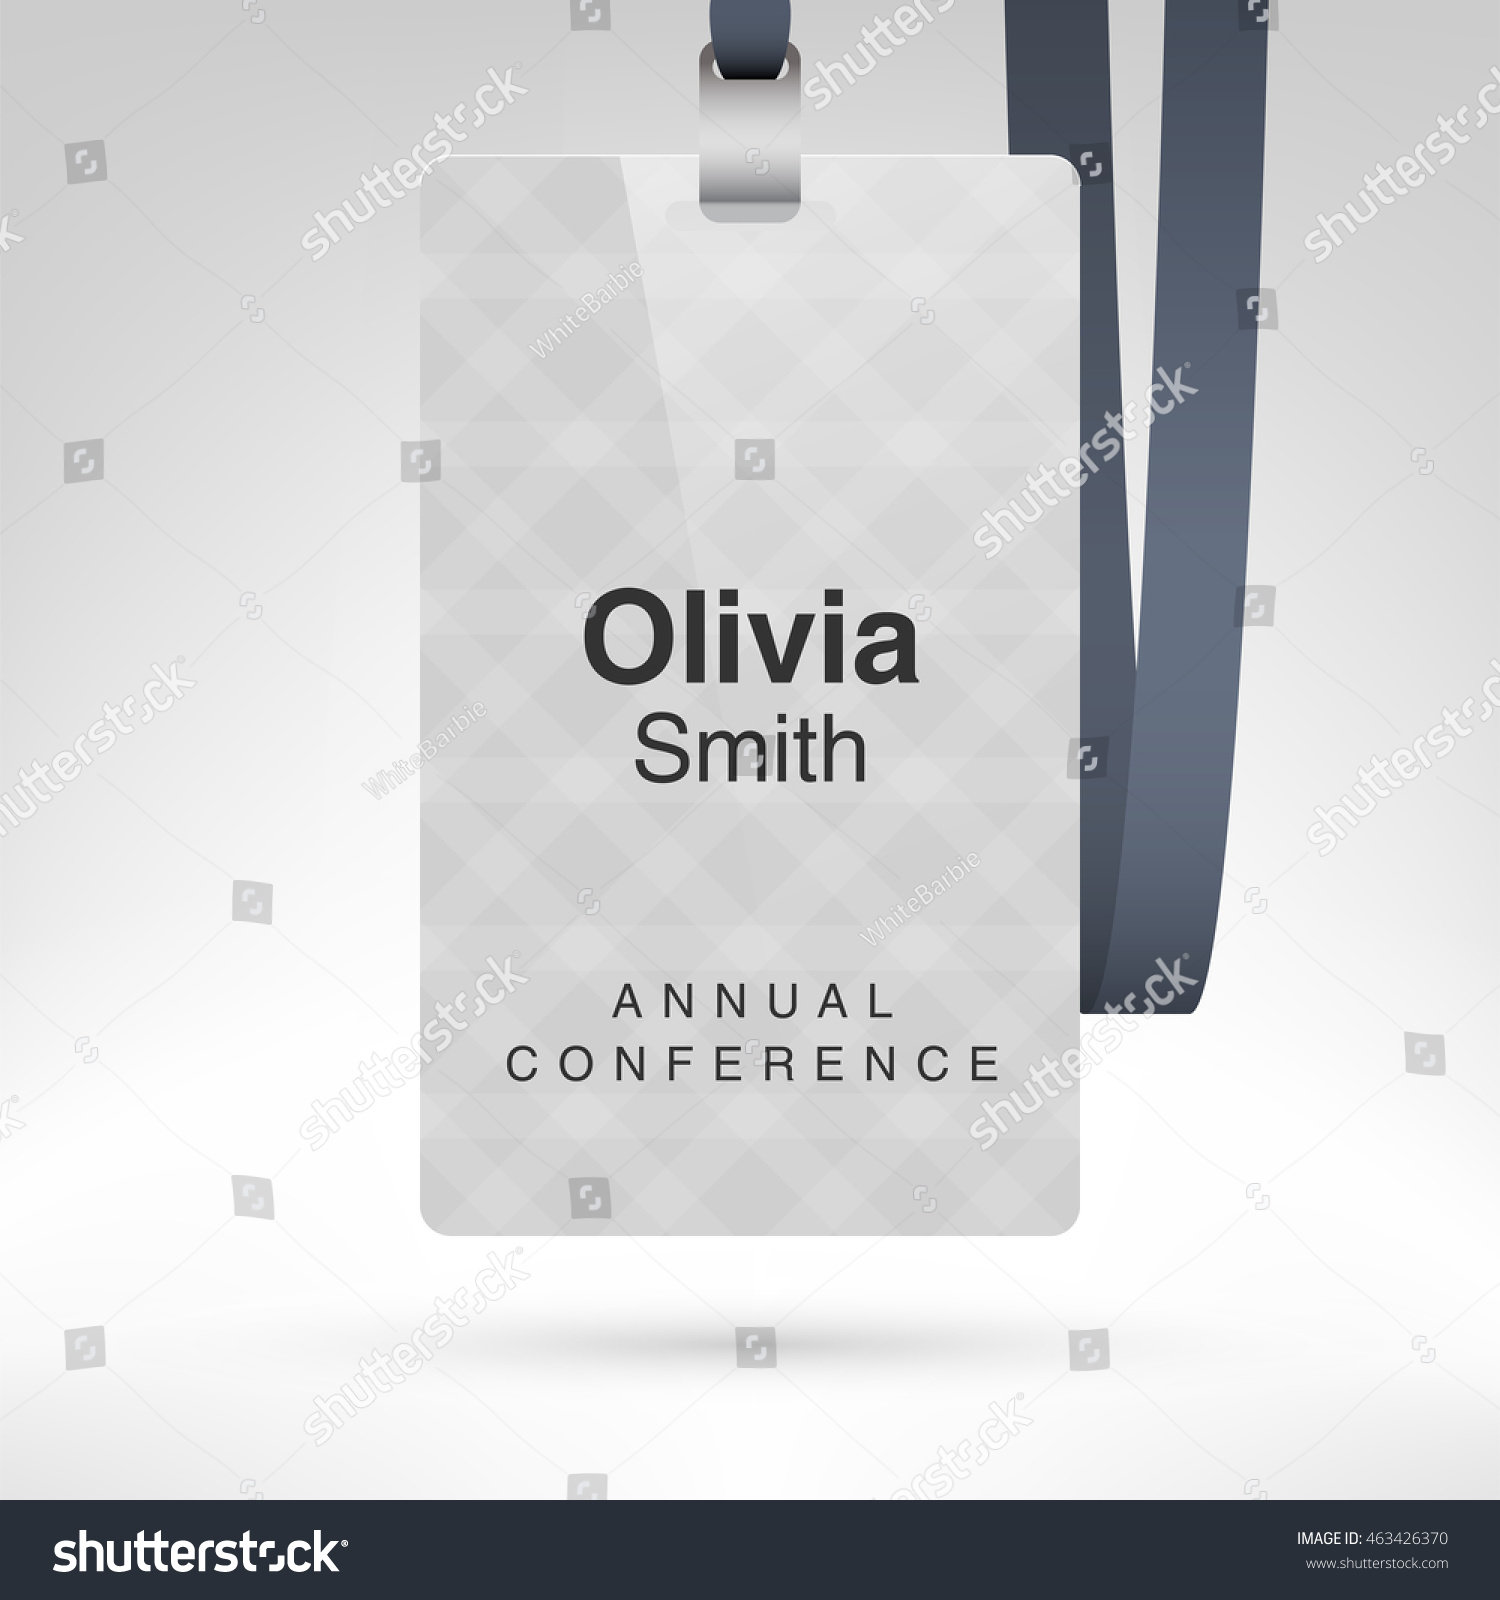 white conference badge name tag placeholder stock vector royalty